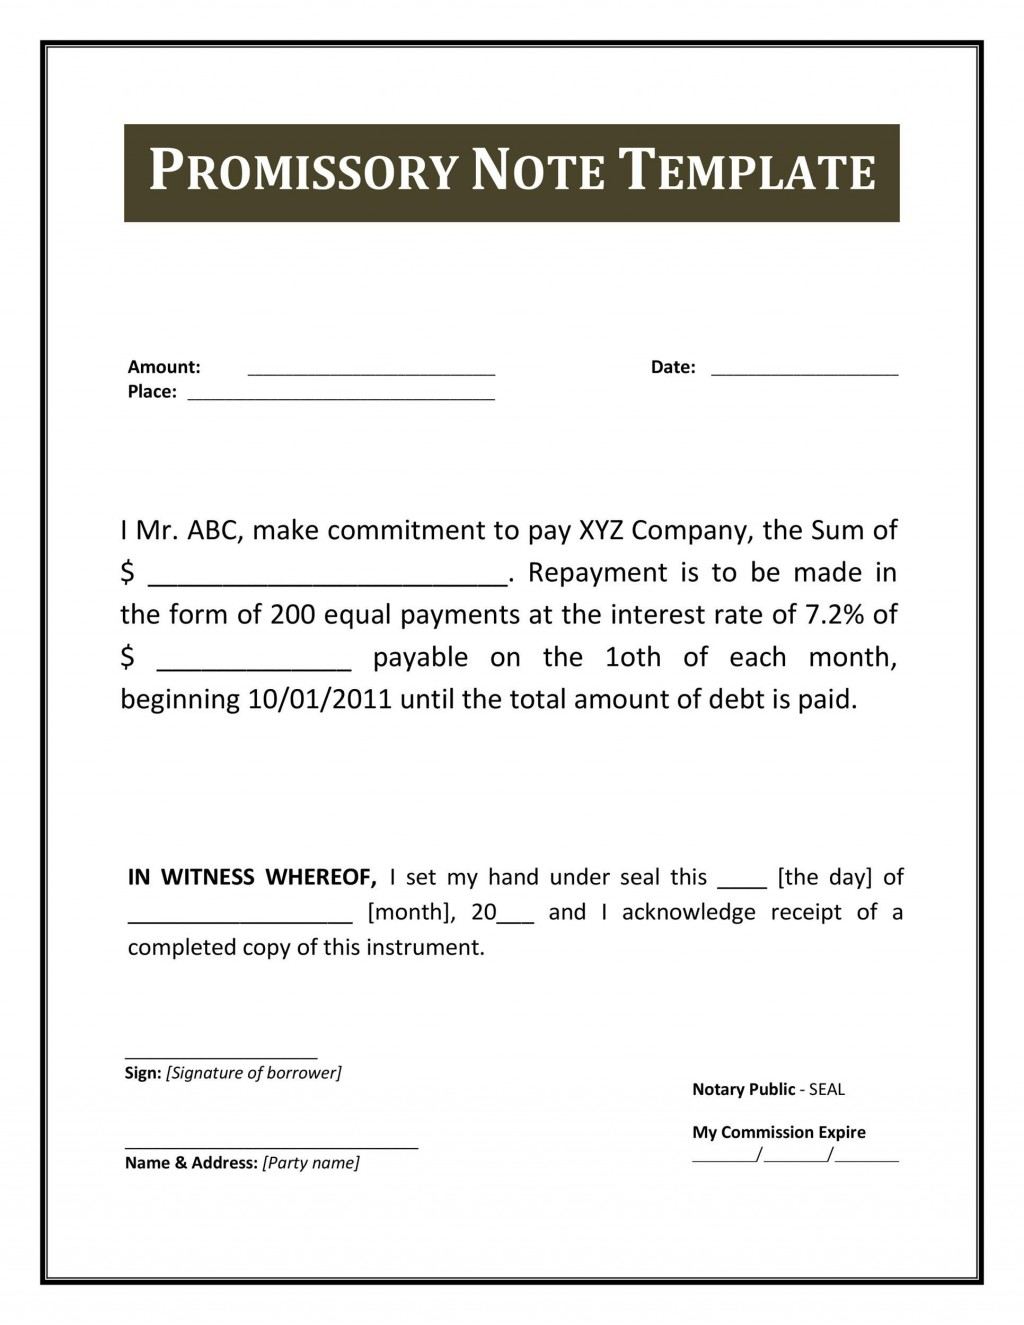 007 Unbelievable Template For Promissory Note Design  Free Personal Loan UkLarge